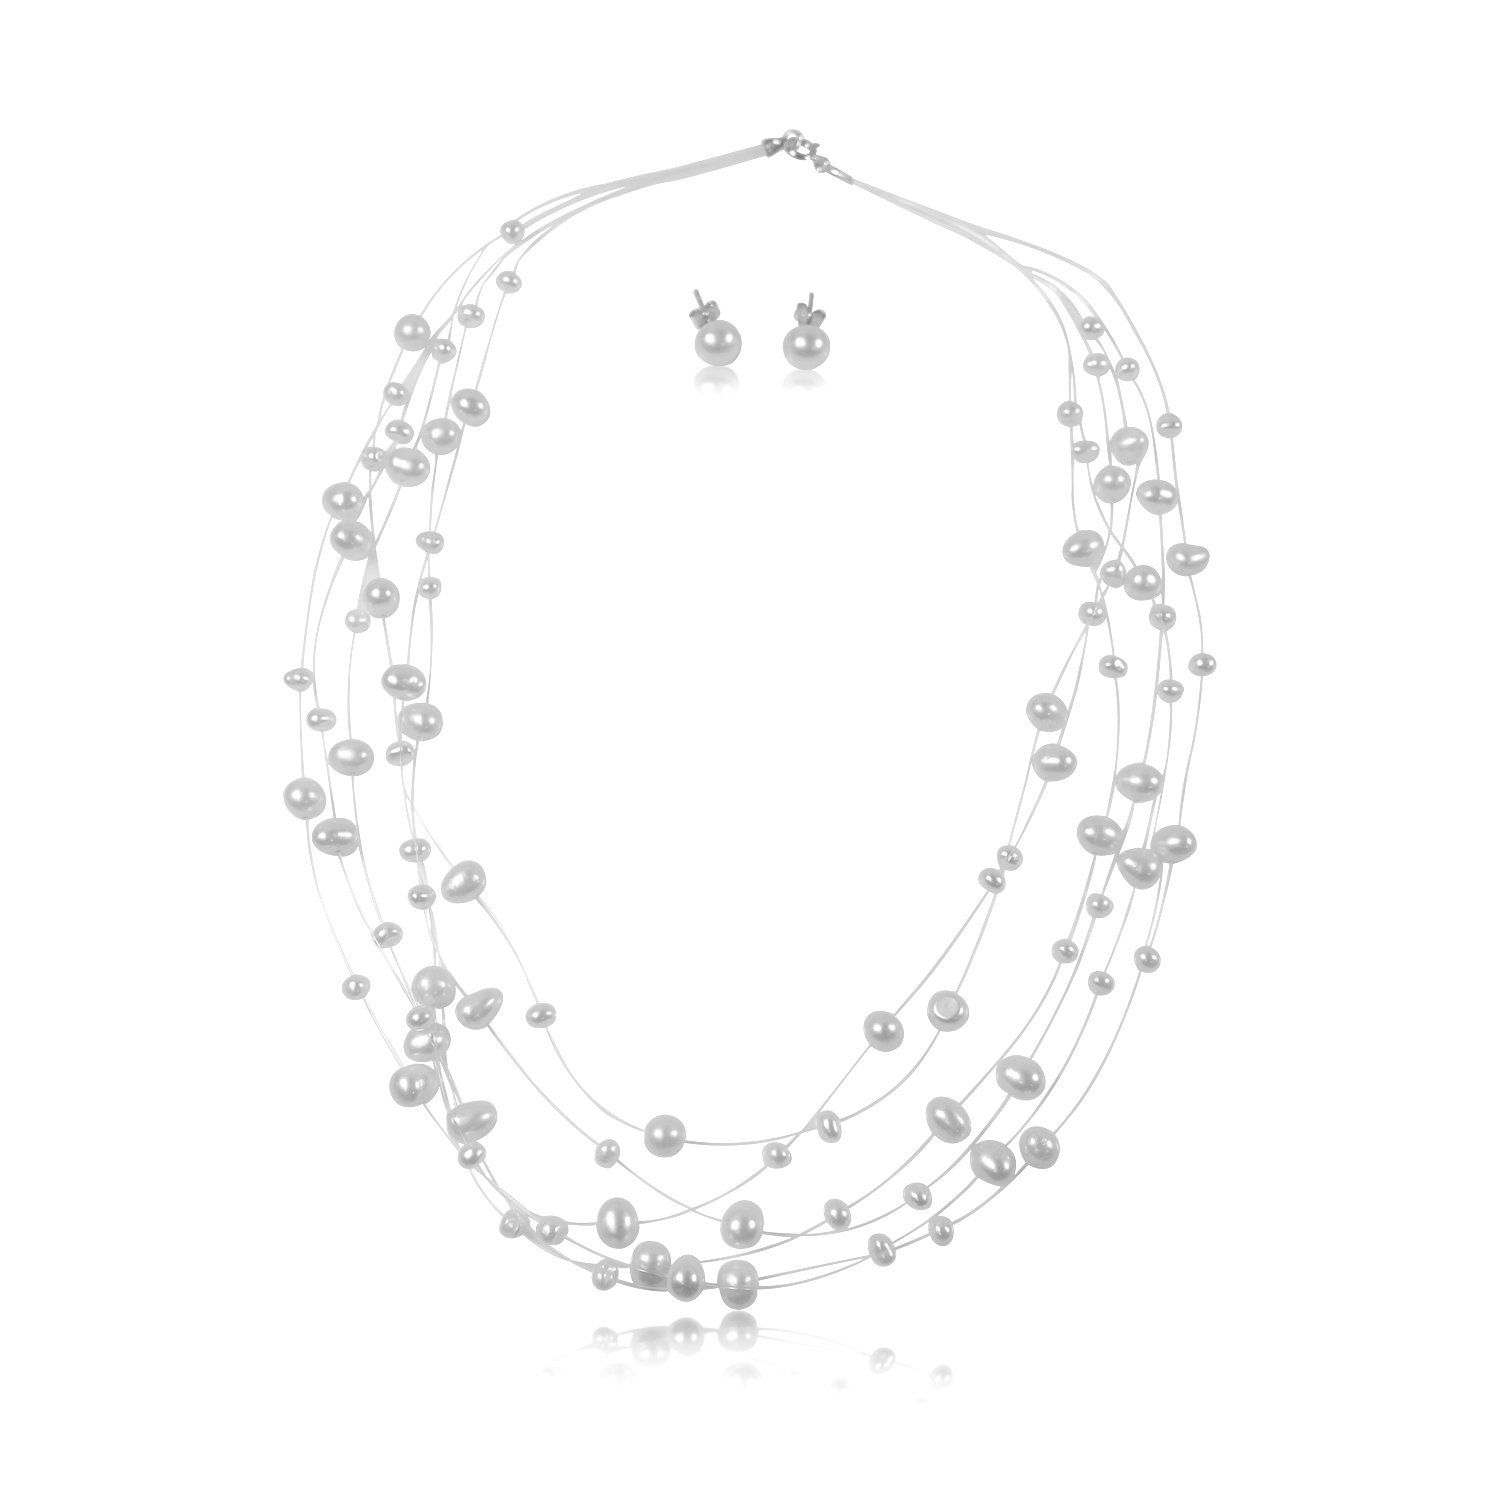 Pearls N Silver Sterling Silver Cultured Bridal White Pearl Illusion Necklace Earrings 6 Strand 16'' To 18'' (6 strands 16'' - 18'' with matching earrings)